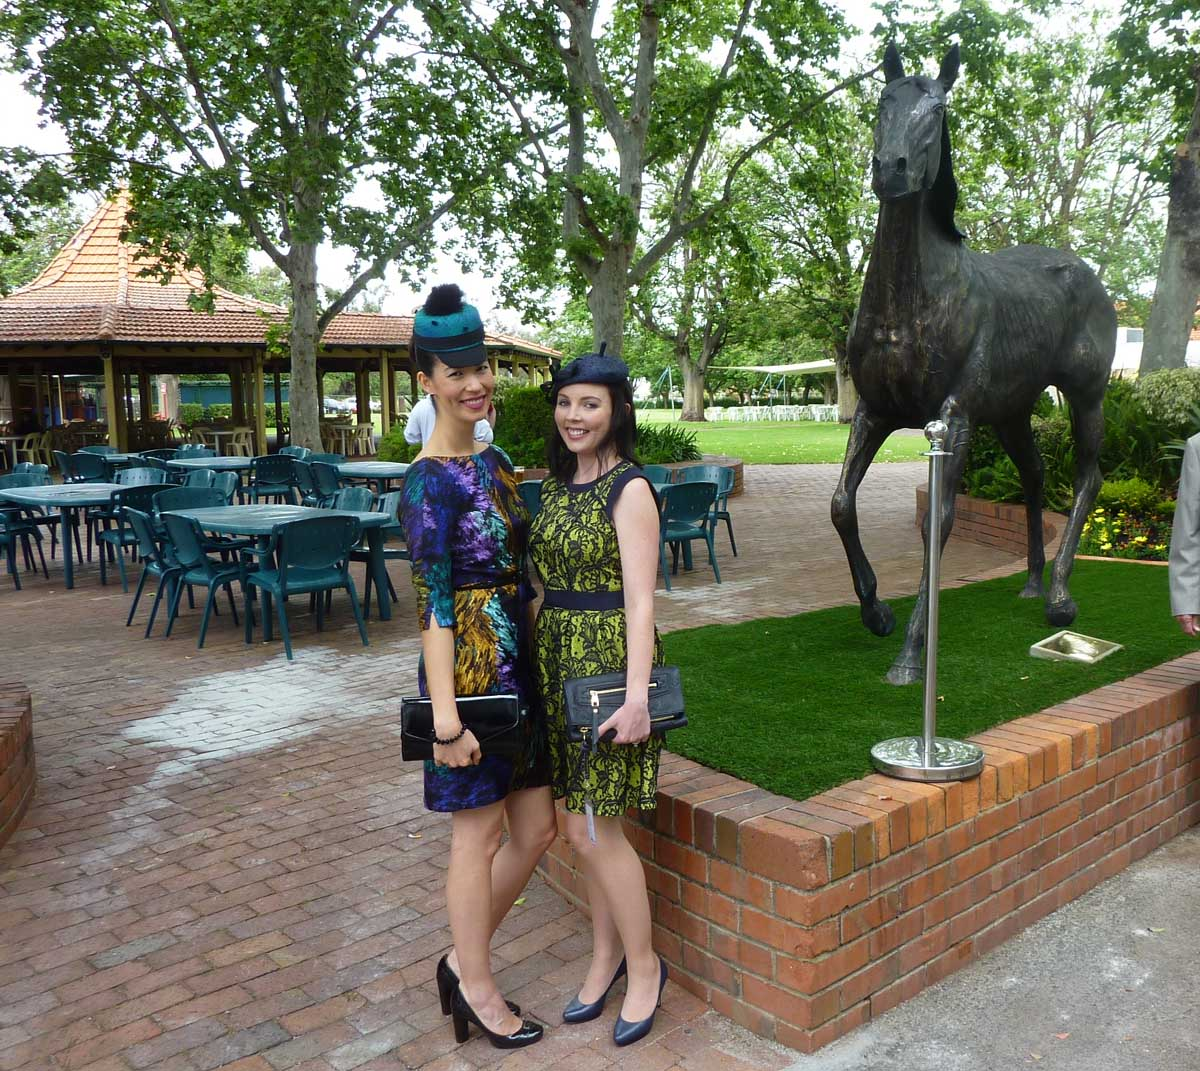 My friend Shelley and I - before the rain - at the newly unveiled statue commemorating champion WA racehorse Northerly.